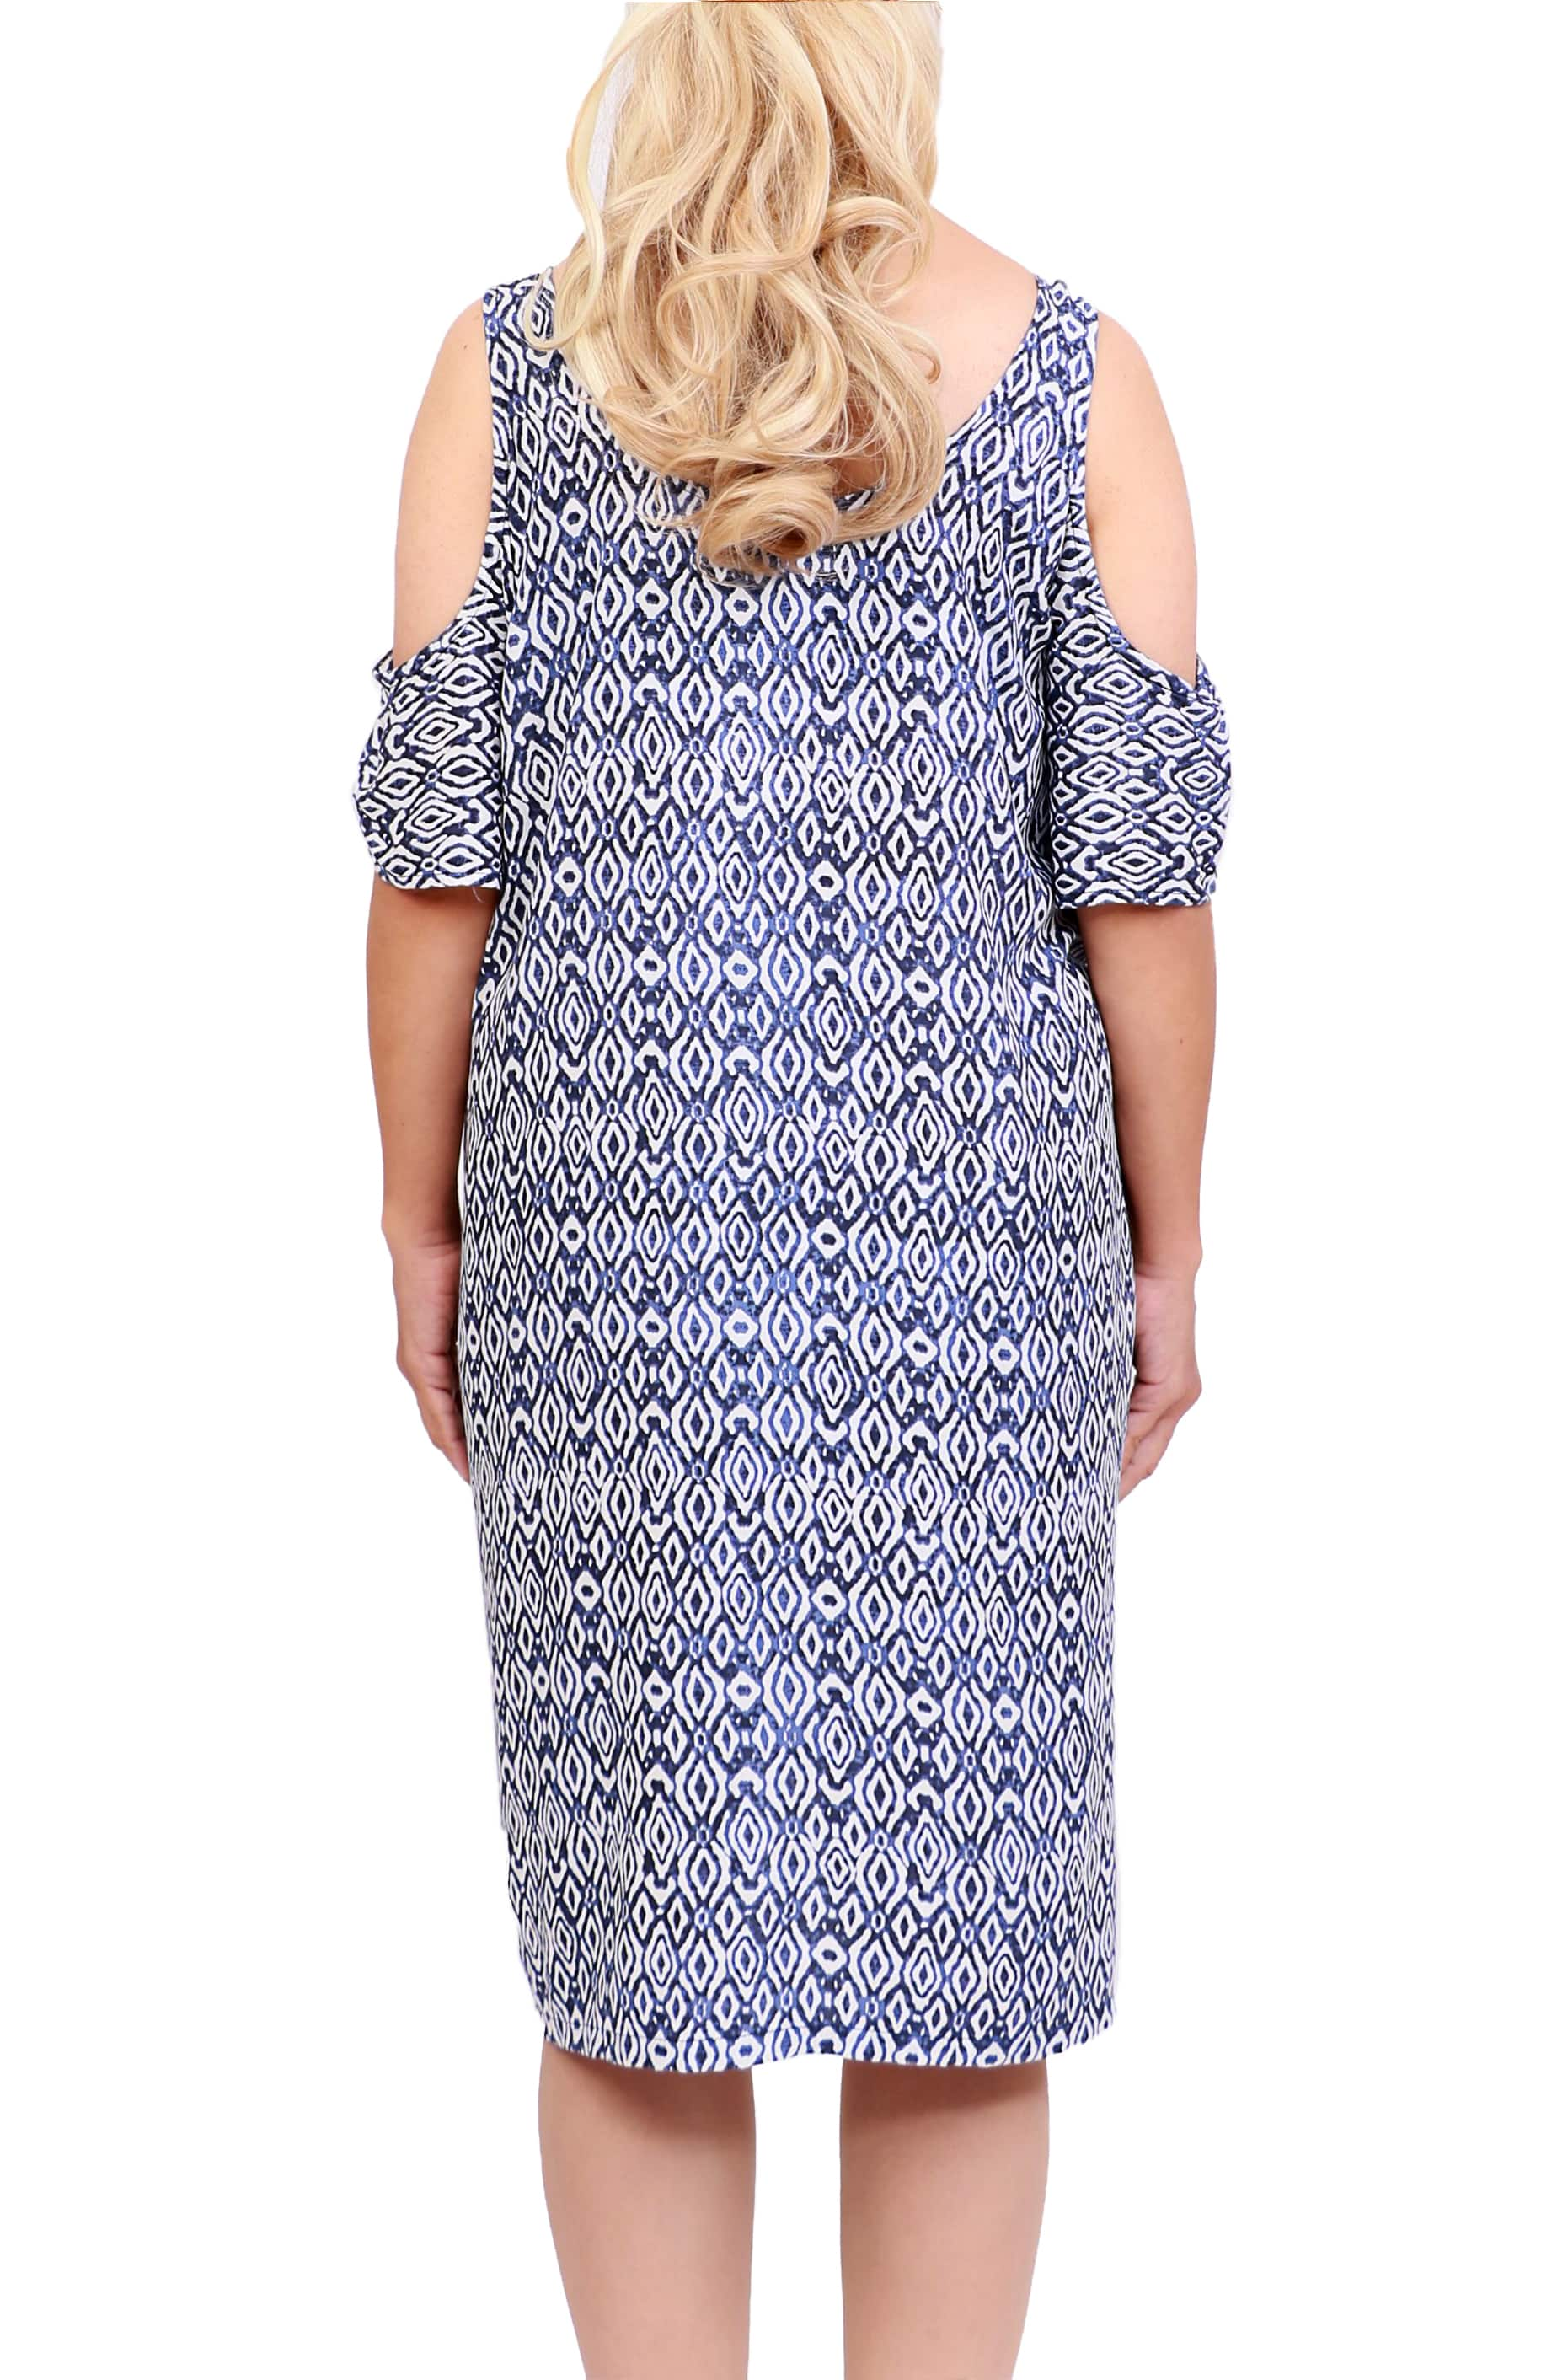 Boho Navy Cut Out Shoulder Dress - ESMERALDA THOMSON Beach & Resort Wear